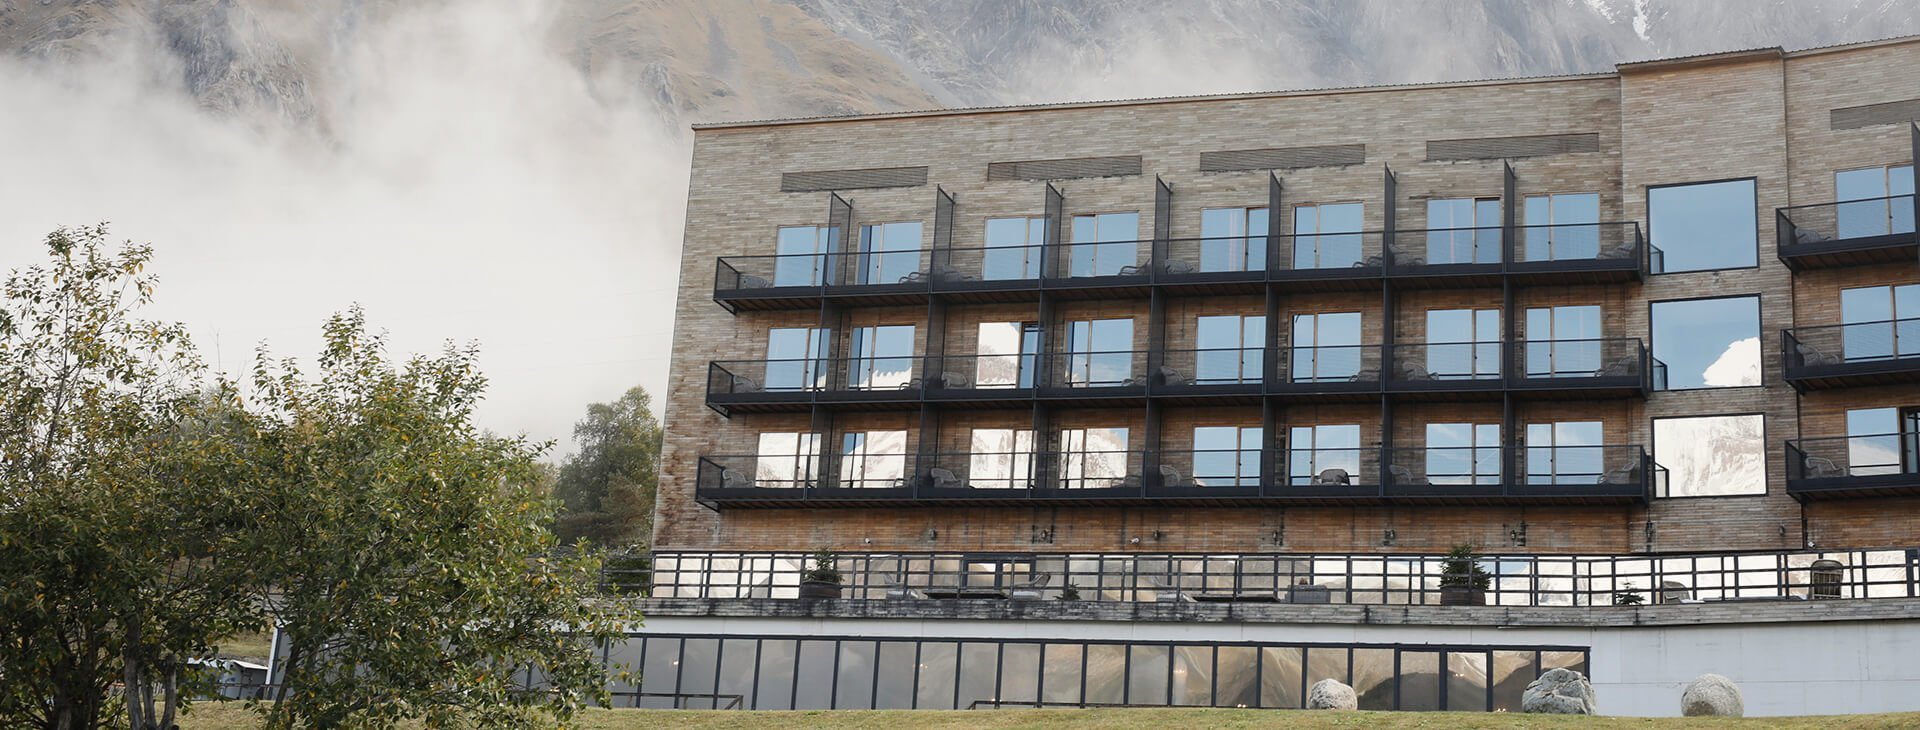 places_to_see_magazin_anders_hotel_rooms_kazbegi_stage